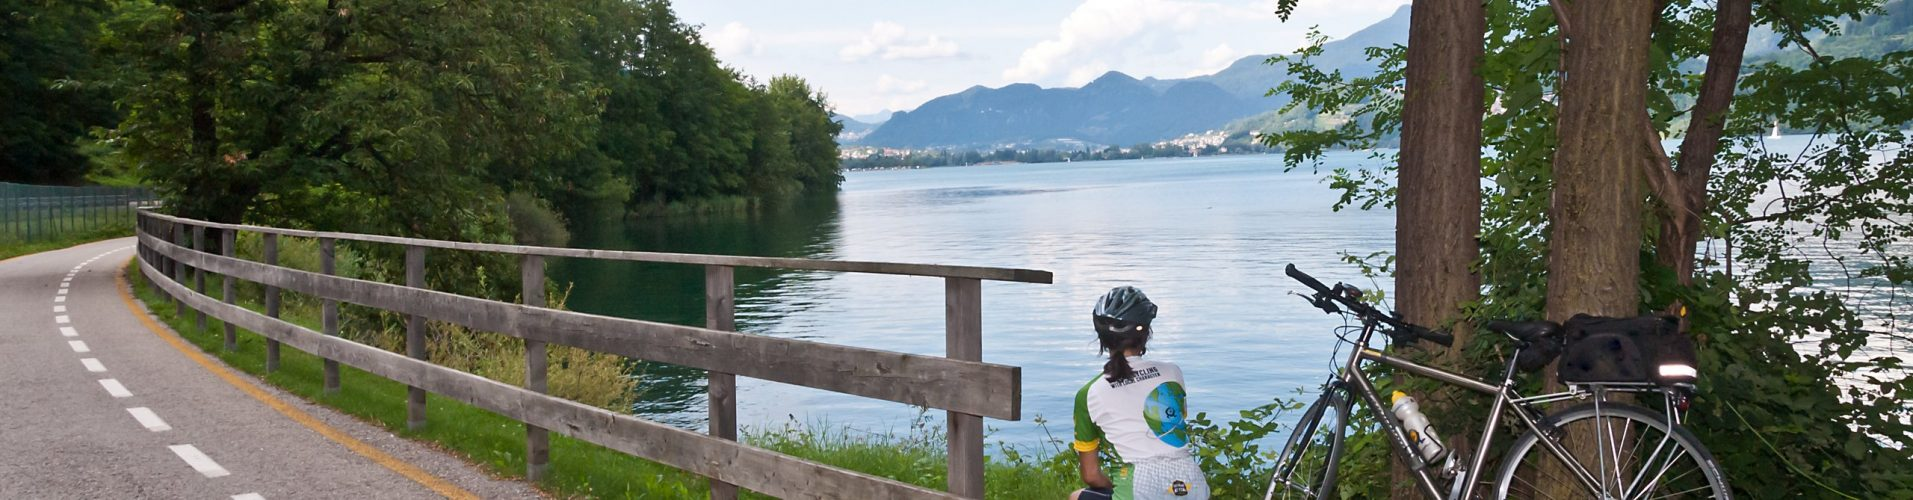 Stopping for a rest on a bike tour in Italy's lakes district.